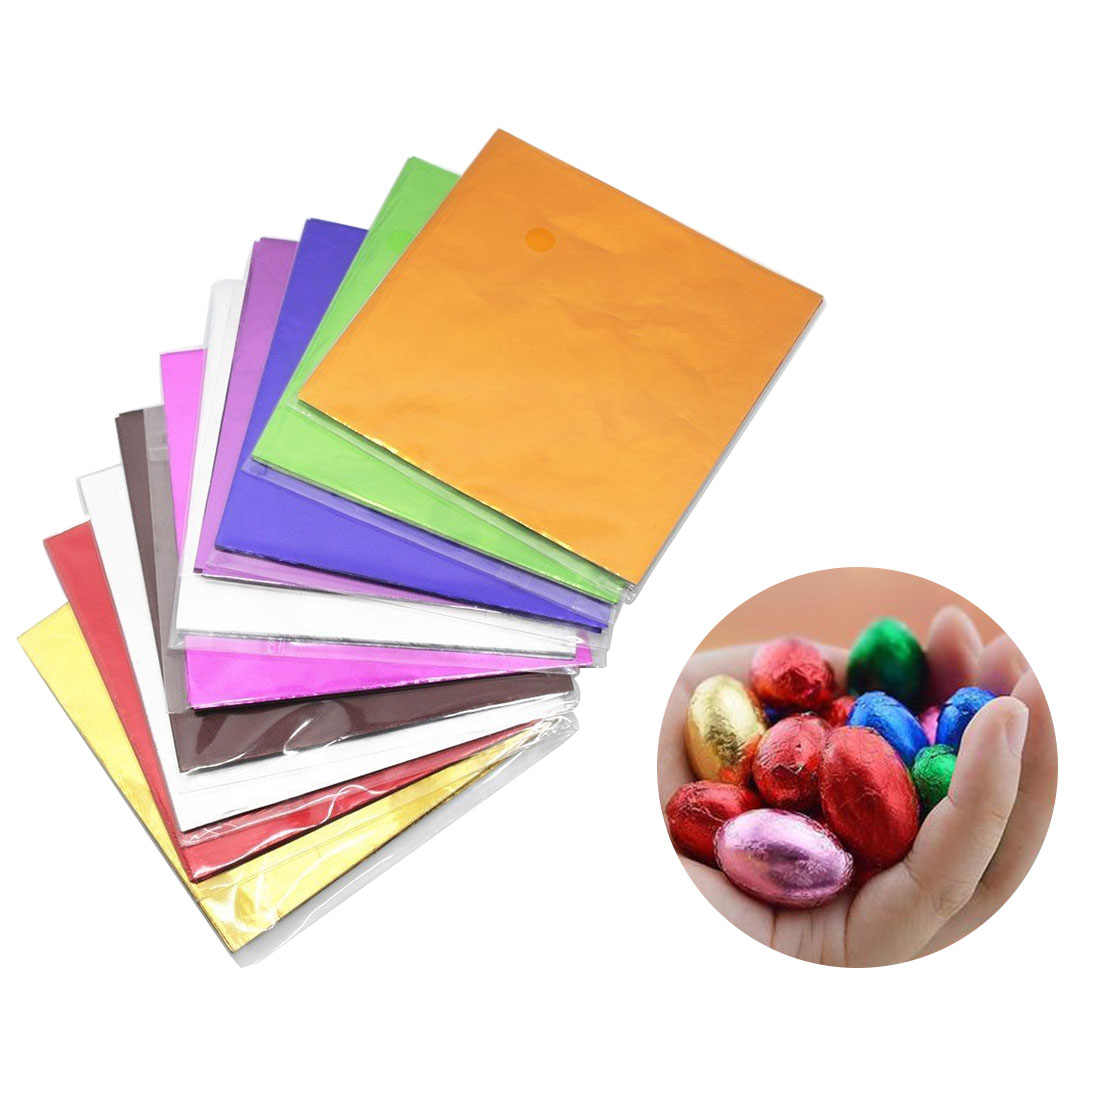 DIY Food Aluminum Foils Paper Chocolate Candy Packaging 100pcs 8x8CM 12 Colors Party Birthday Wrapper Tin Paper